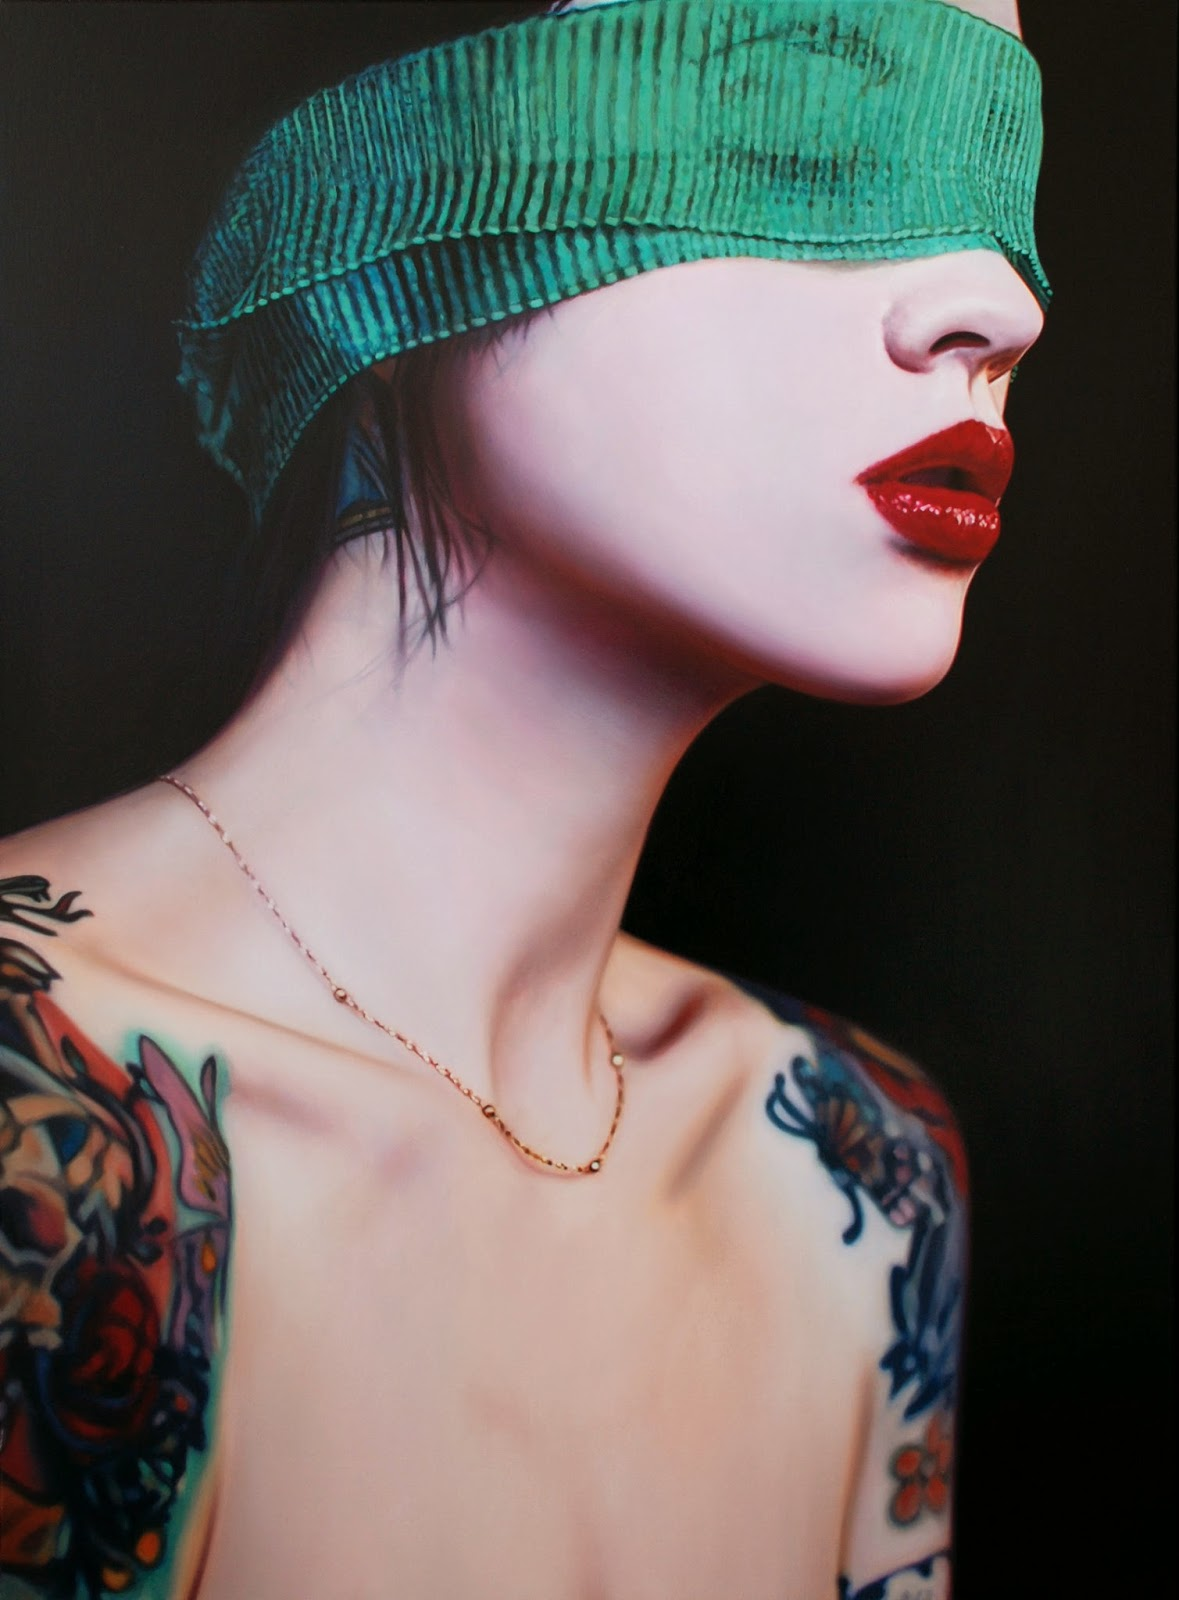 Photo-Realistic Paintings by Philip Muñoz